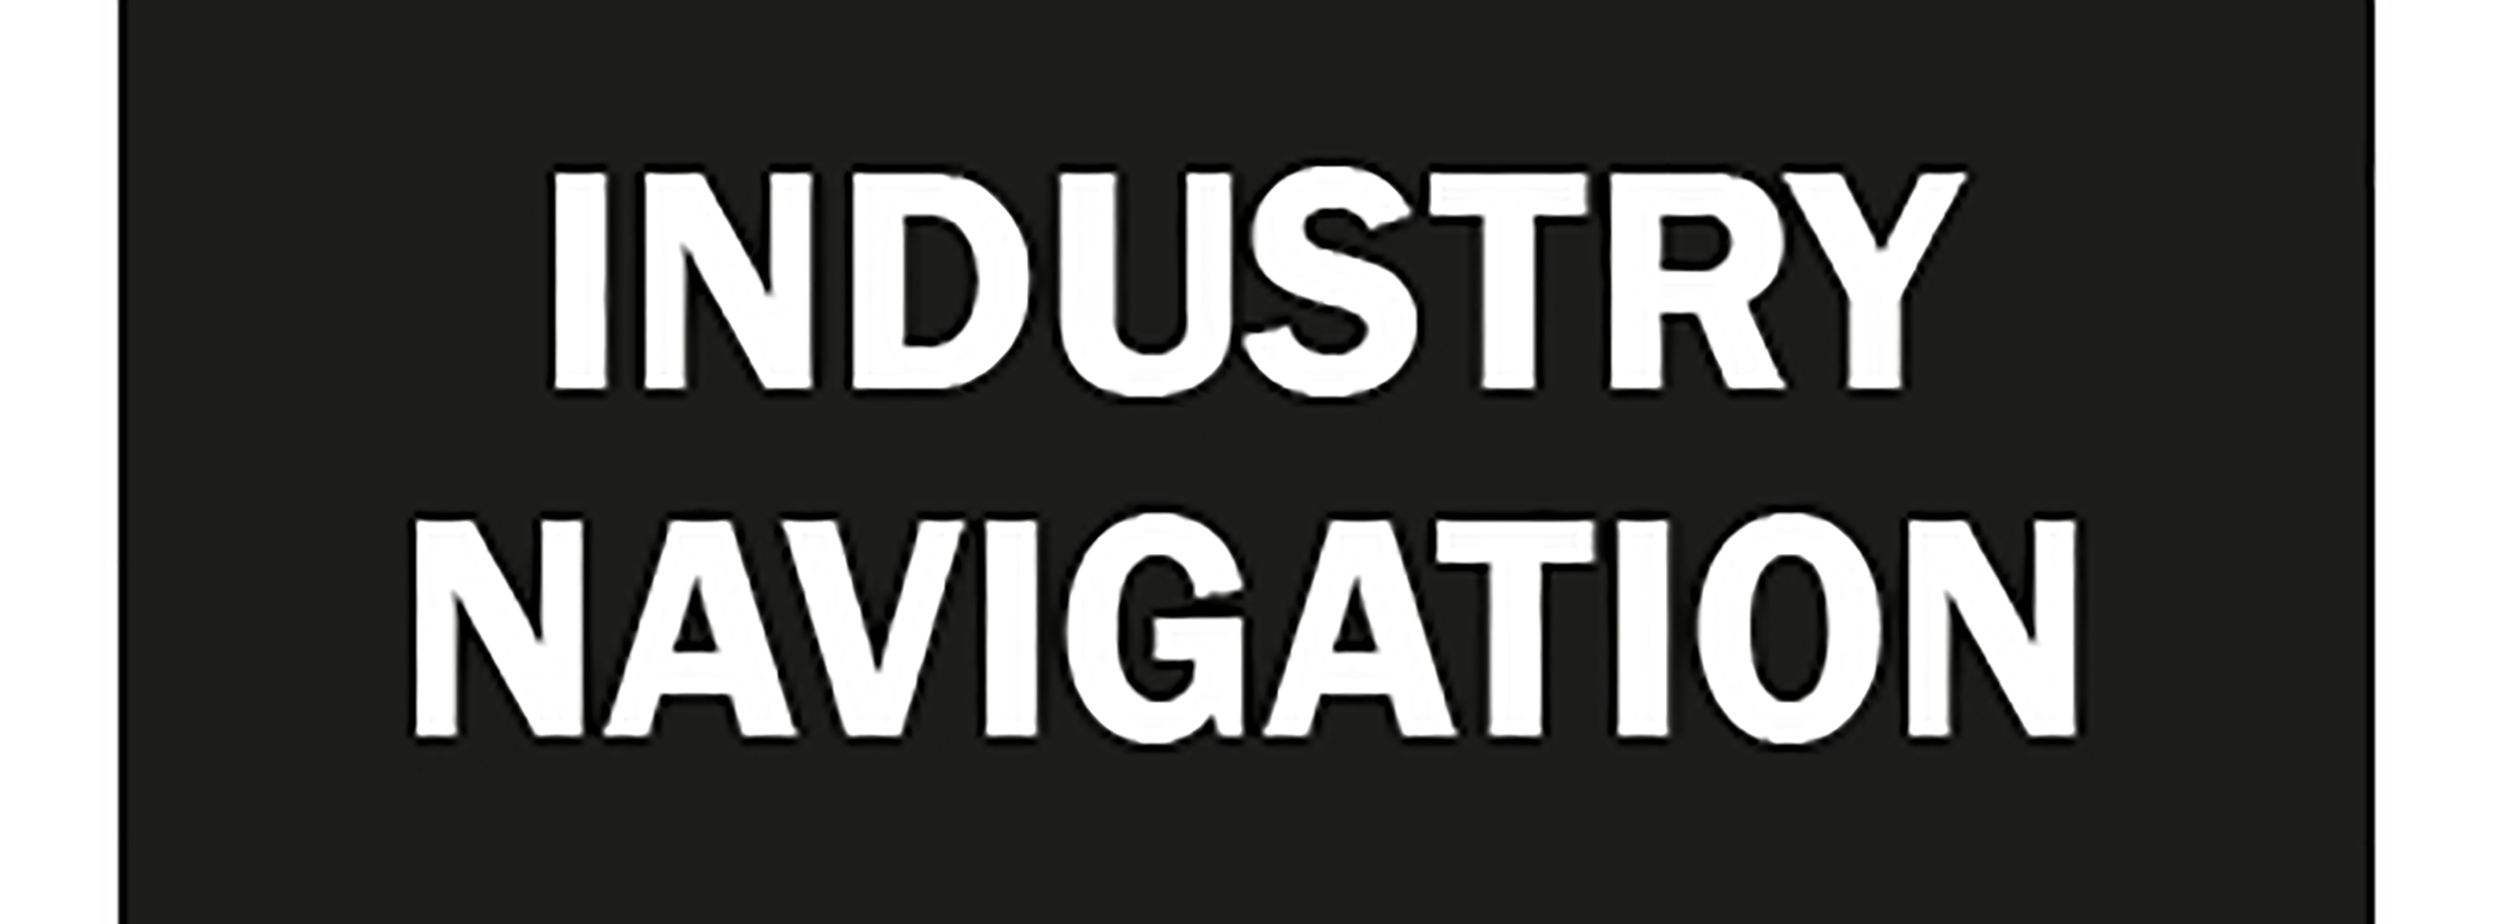 Industry Navigation BUTTON.jpg